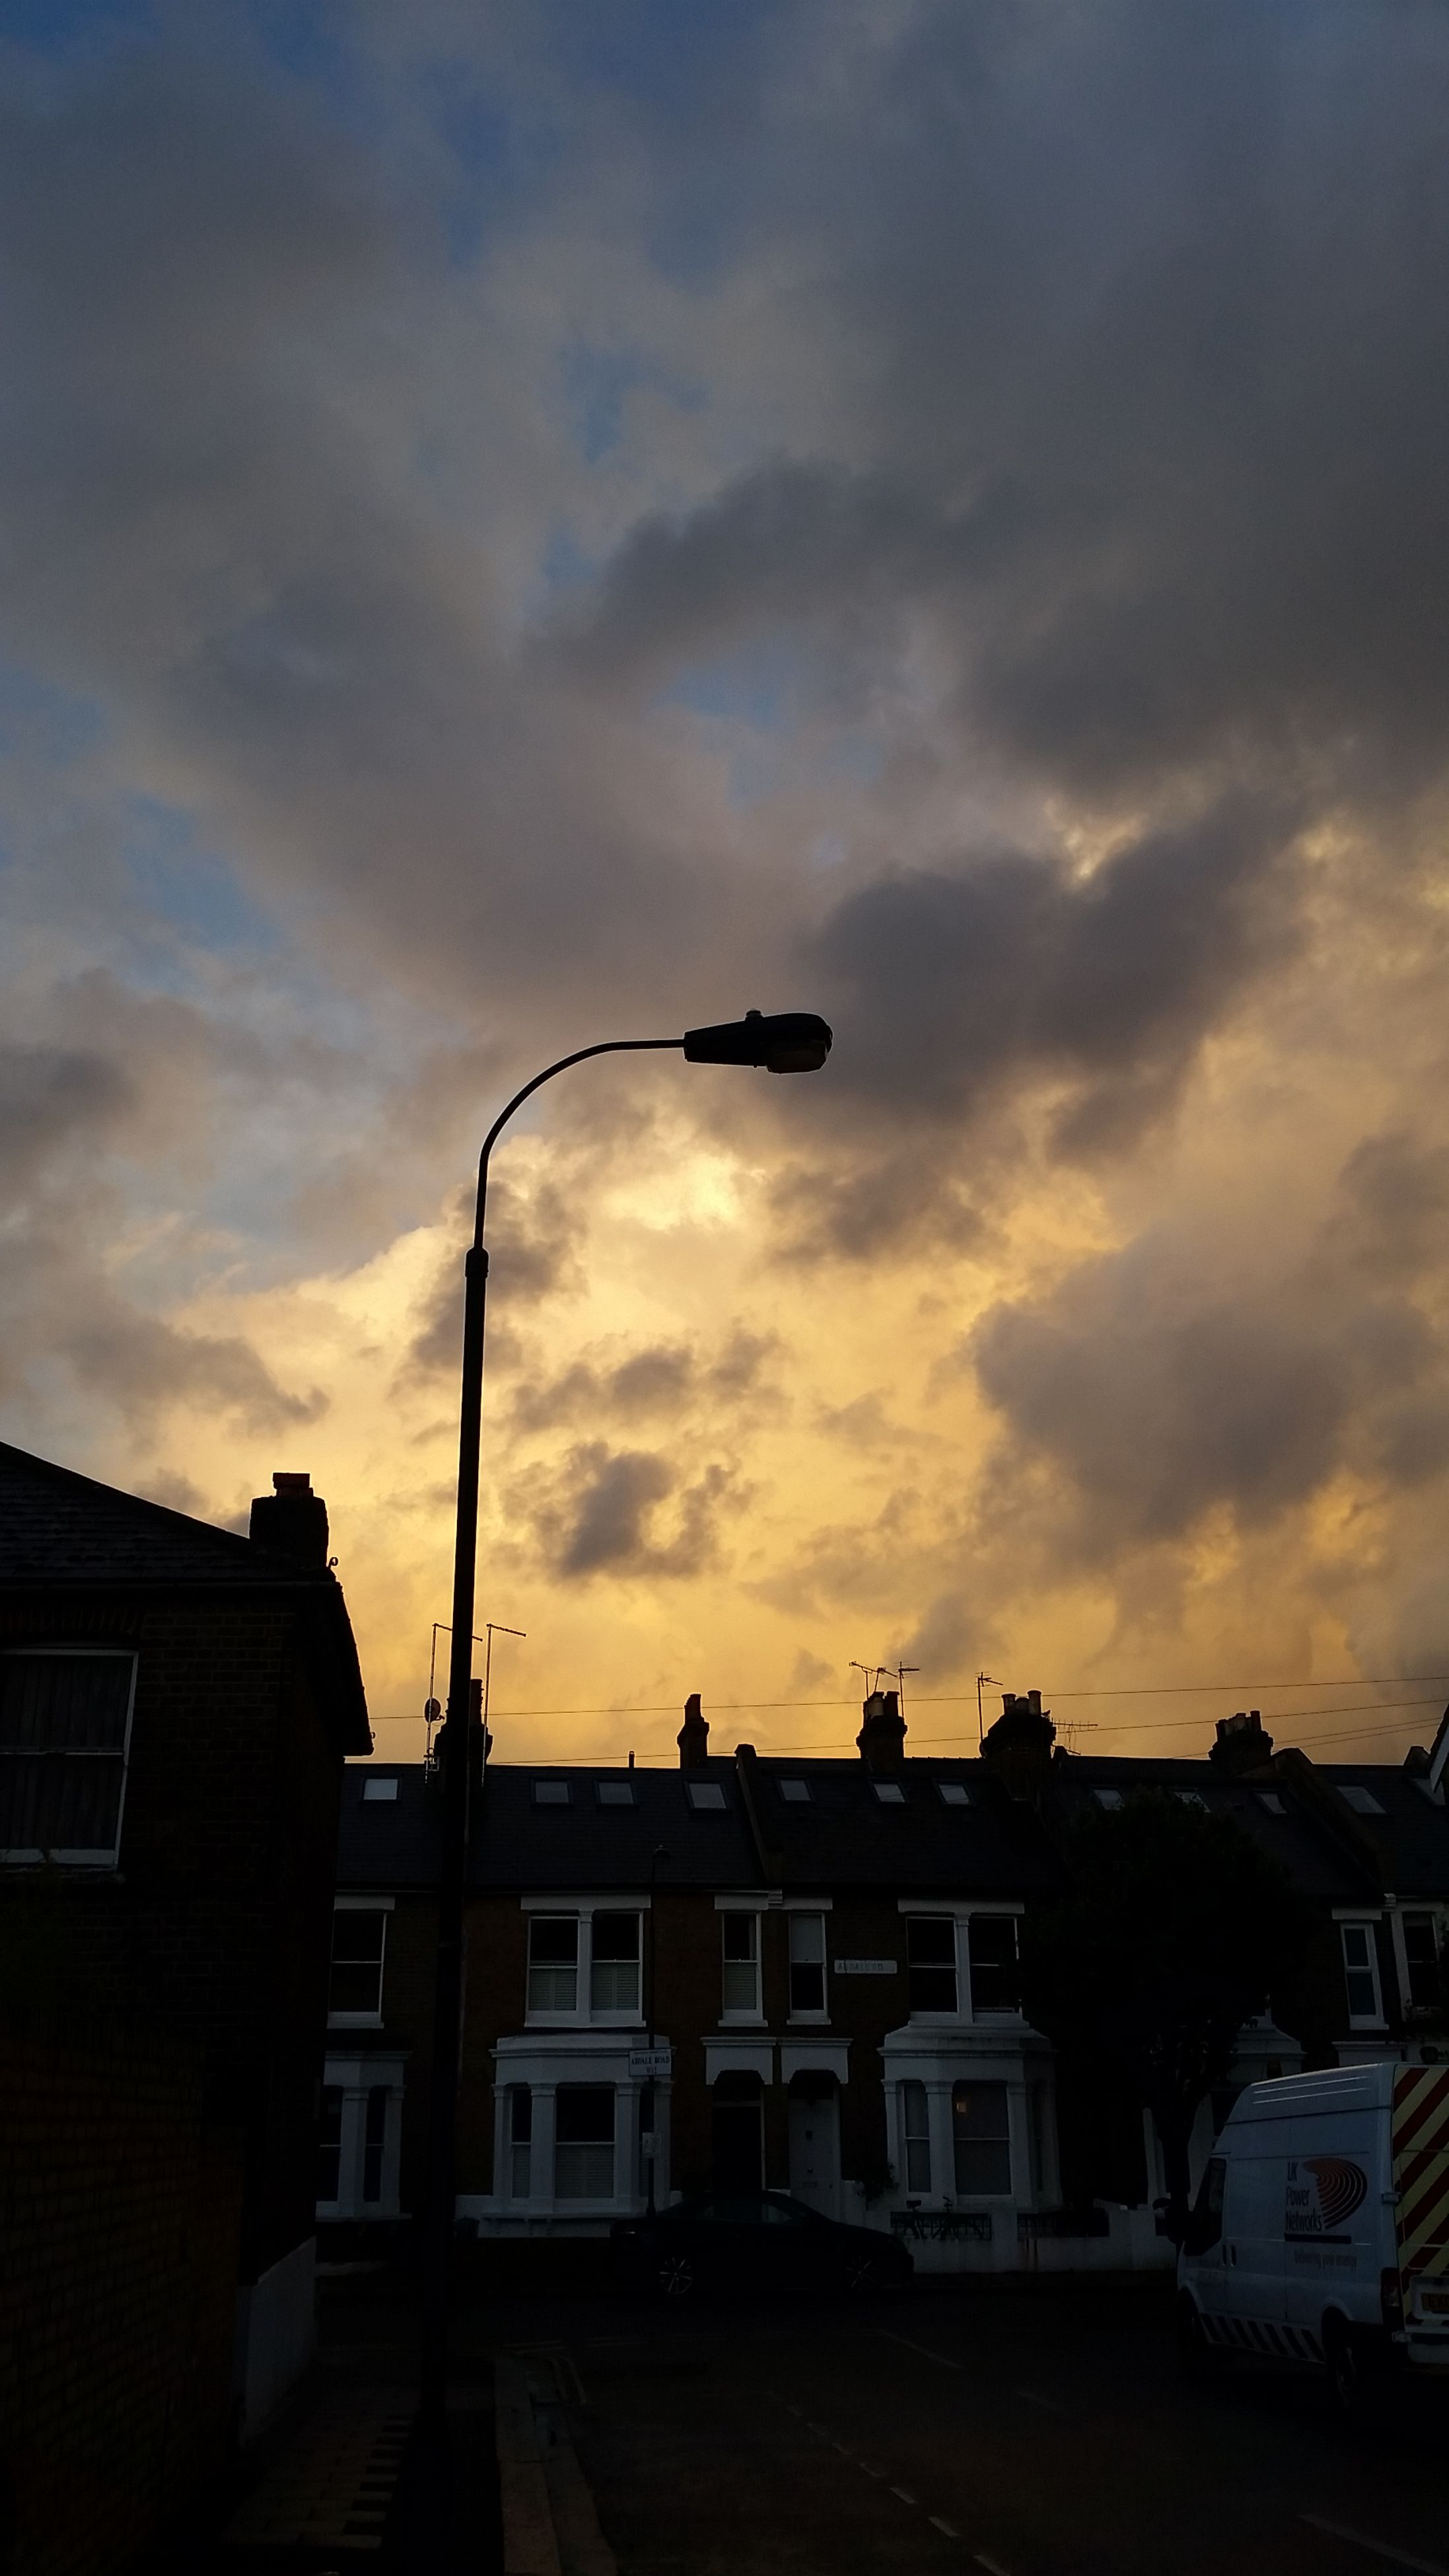 building exterior, architecture, built structure, sky, low angle view, cloud - sky, cloudy, cloud, building, sunset, silhouette, city, residential structure, residential building, dusk, outdoors, street light, no people, house, high section